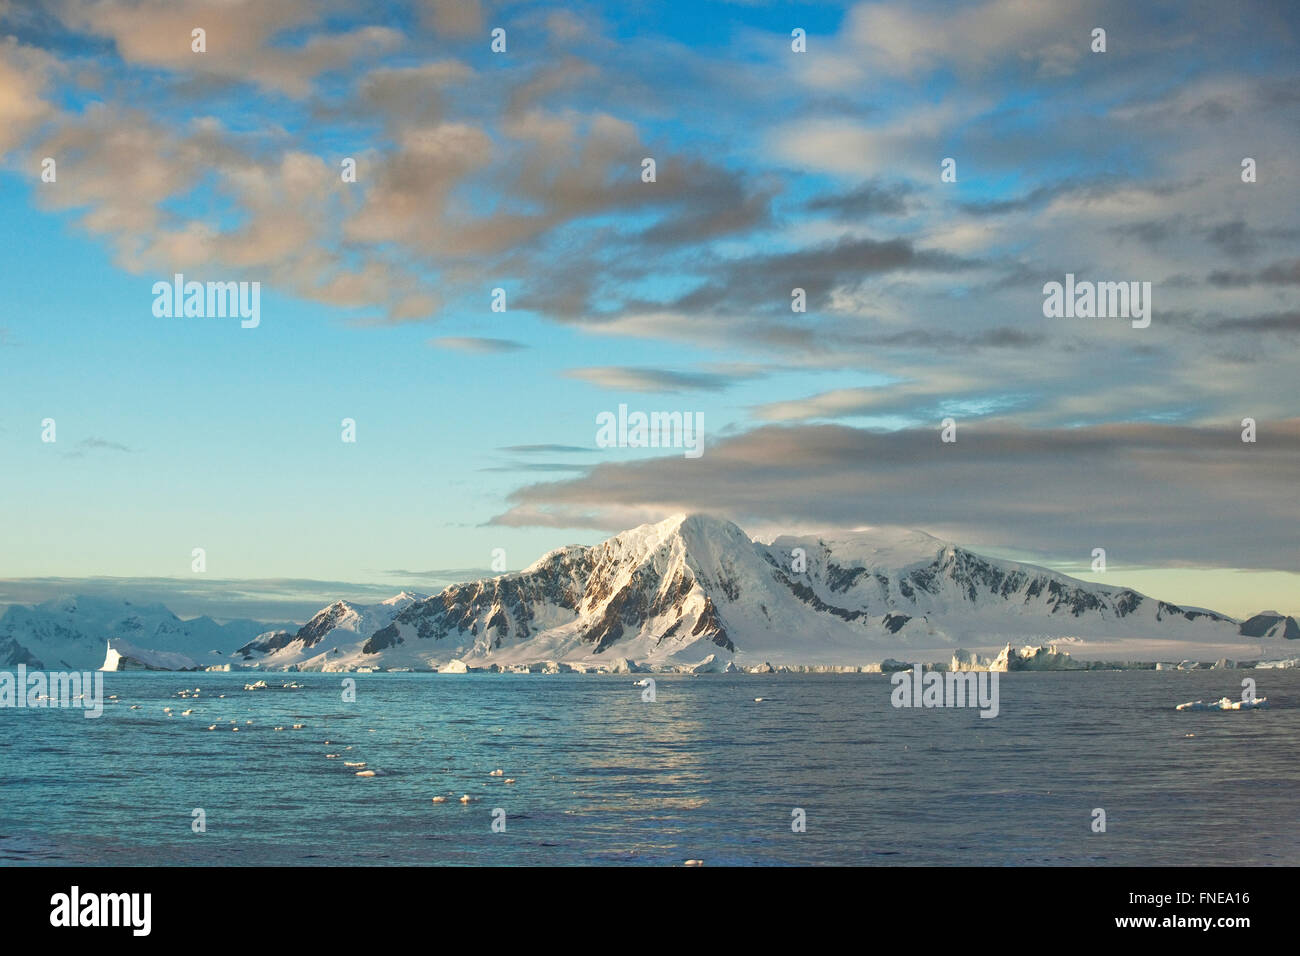 Snowy rocks in morning light, cloudy atmosphere, Antarctic Peninsula, Antarctica - Stock Image